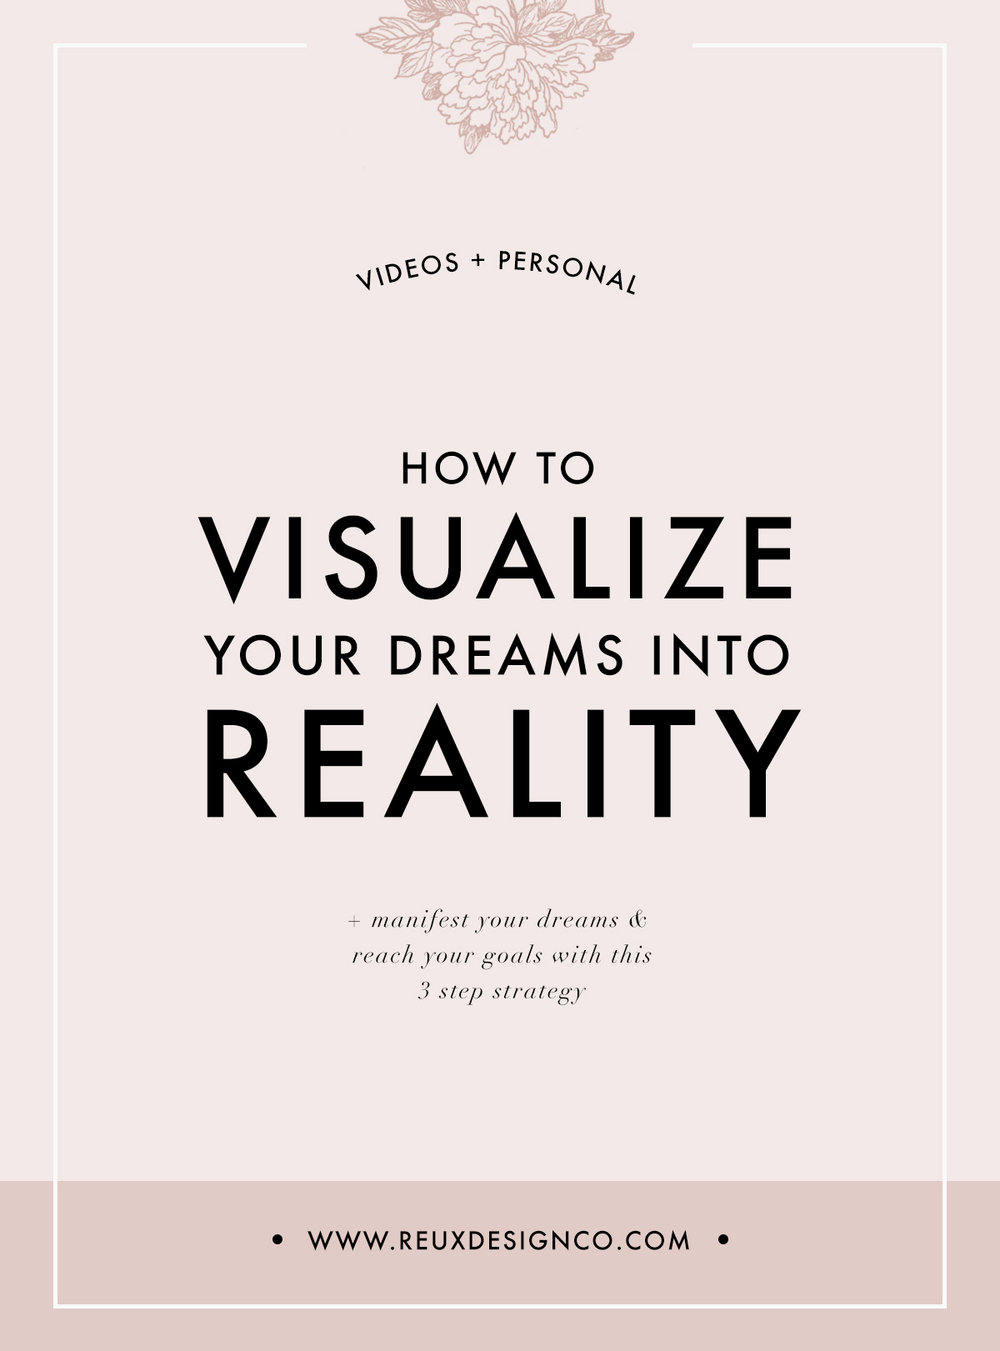 visualize your dreams and manifest your goals into reality | Reux Design Co.